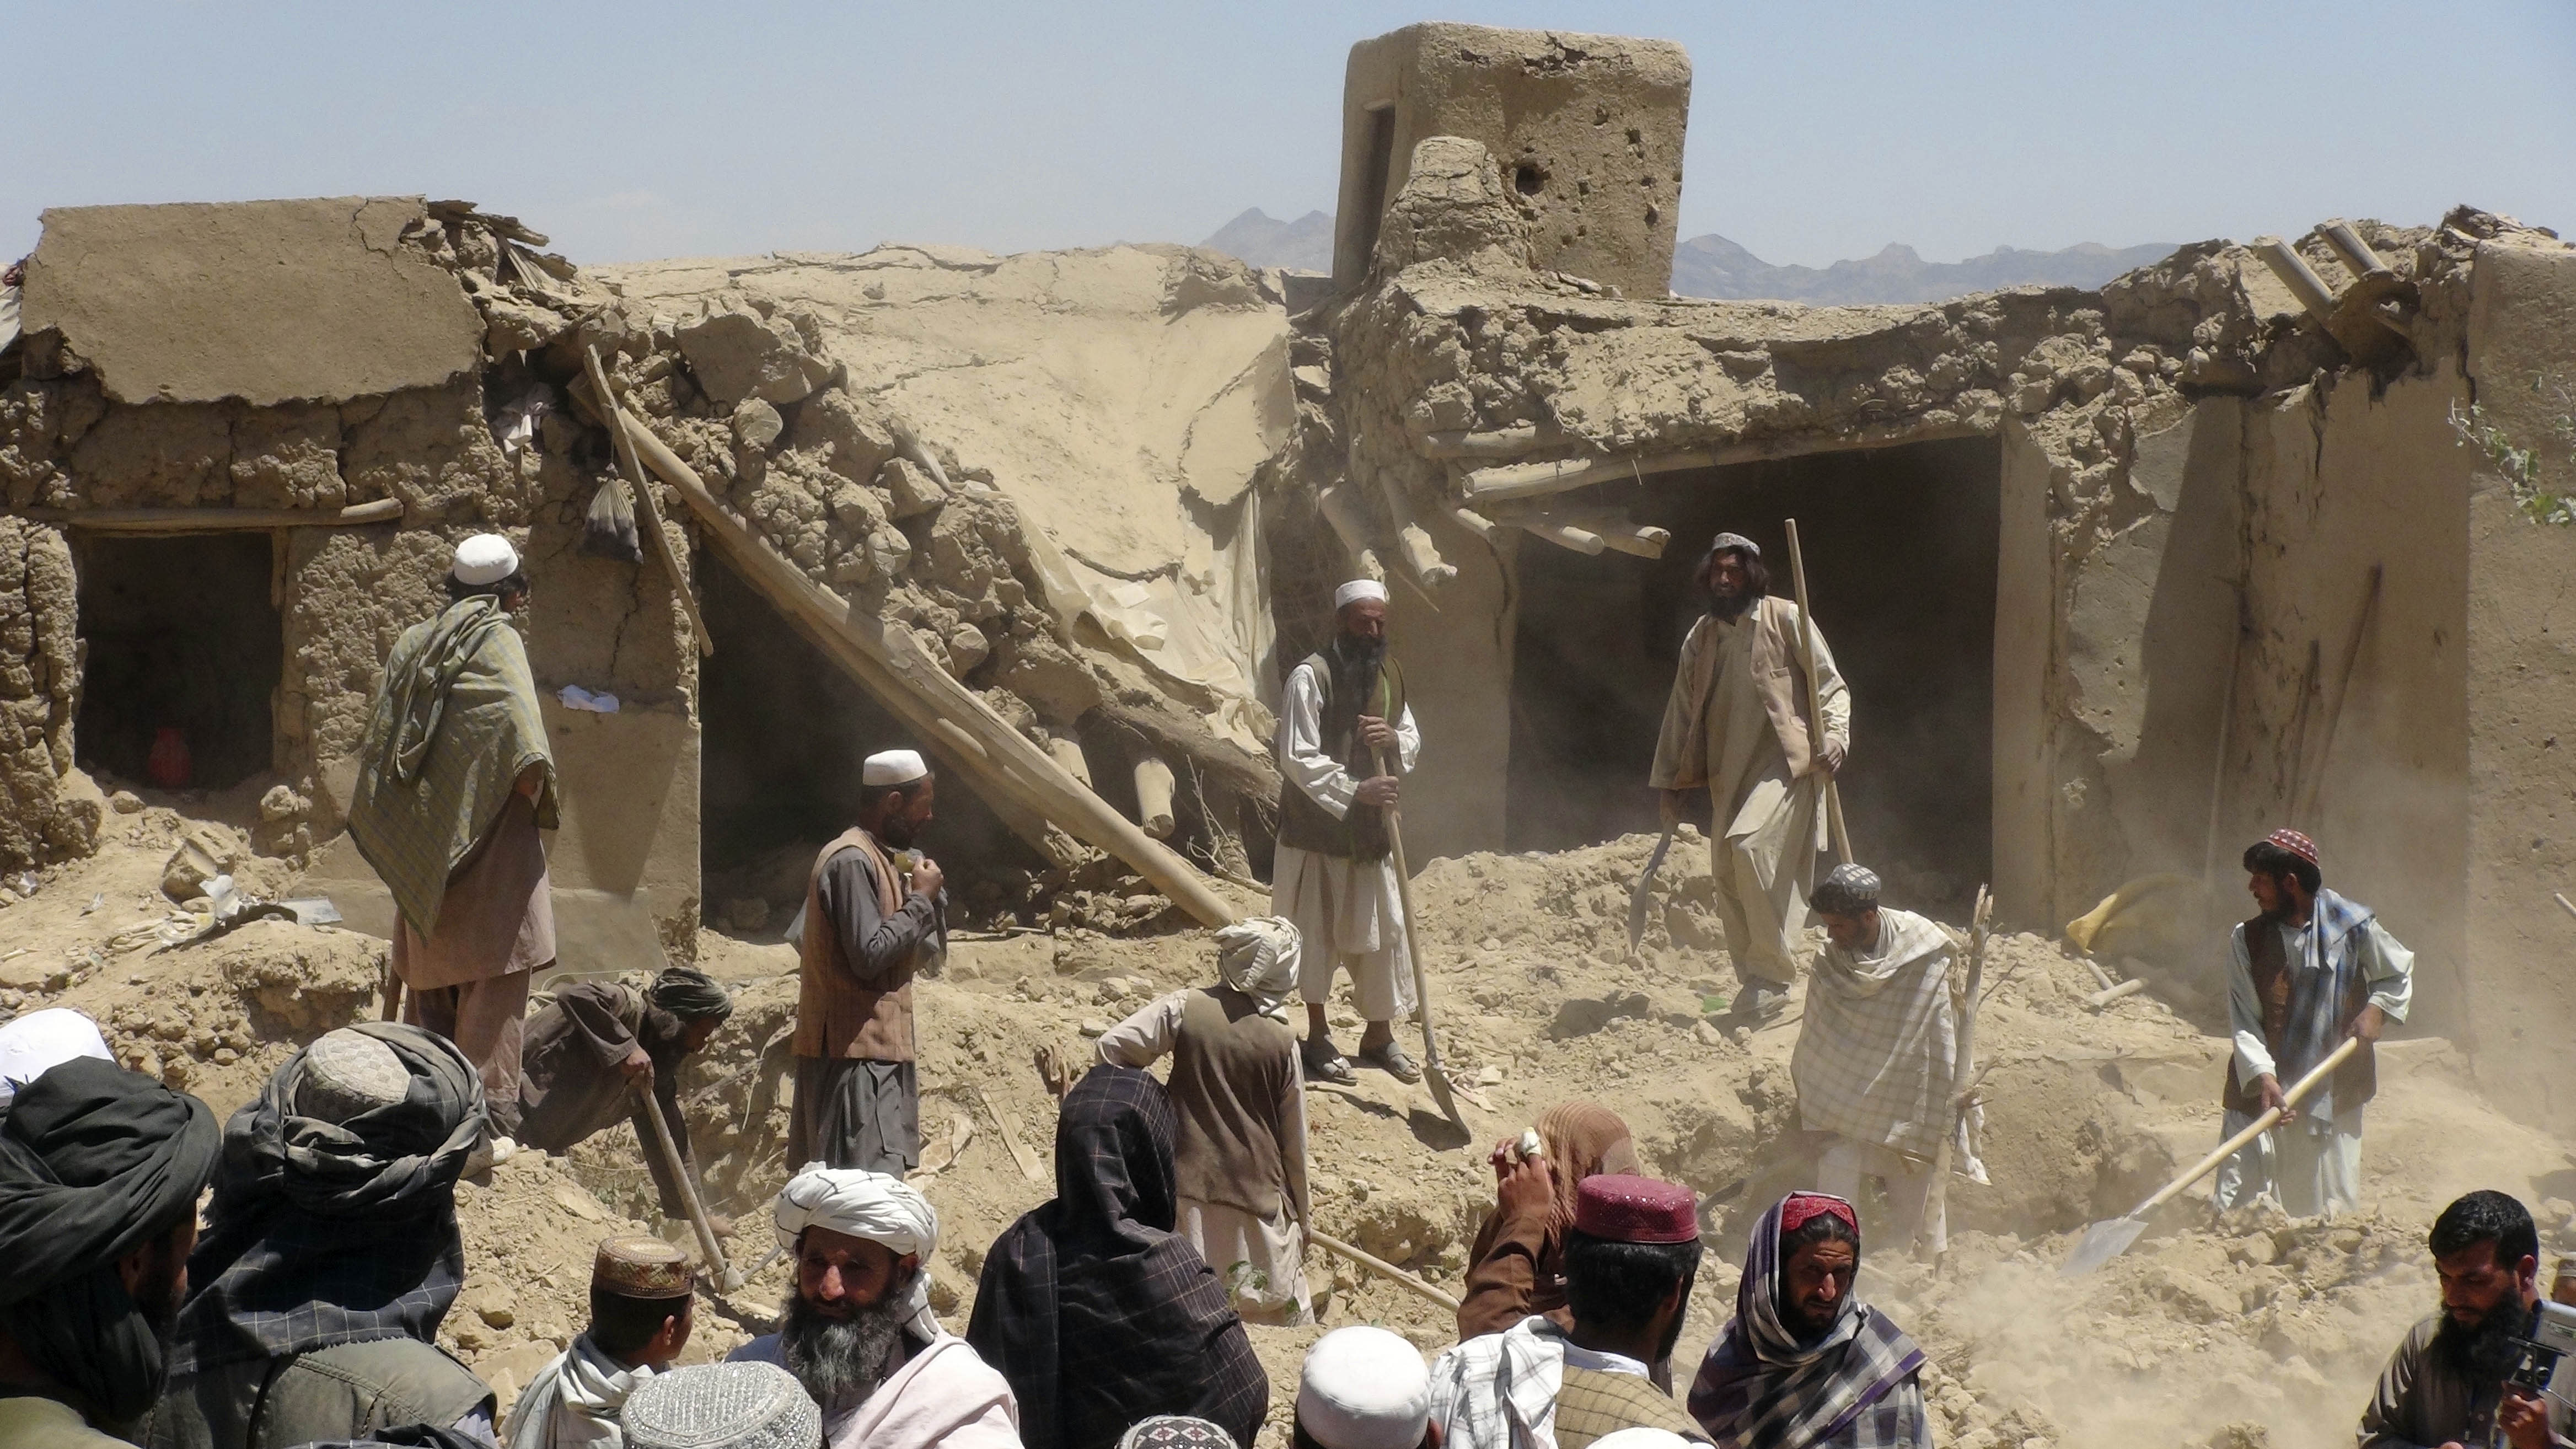 FILE - In this Wednesday, June 6, 2012 file photo, Afghan villagers gather near a house destroyed in an apparent NATO raid in Logar province, south of Kabul, Afghanistan. The number of U.S. drone strikes in Afghanistan jumped 72 percent in 2012, killing at least 16 civilians in a sharp increase from the previous year, the U.N. said Tuesday, Feb. 19, 2013 in a sign of the changing mission as international forces prepare to withdraw combat forces in less than two years.(AP Photo/Ihsanullah Majroh, File)